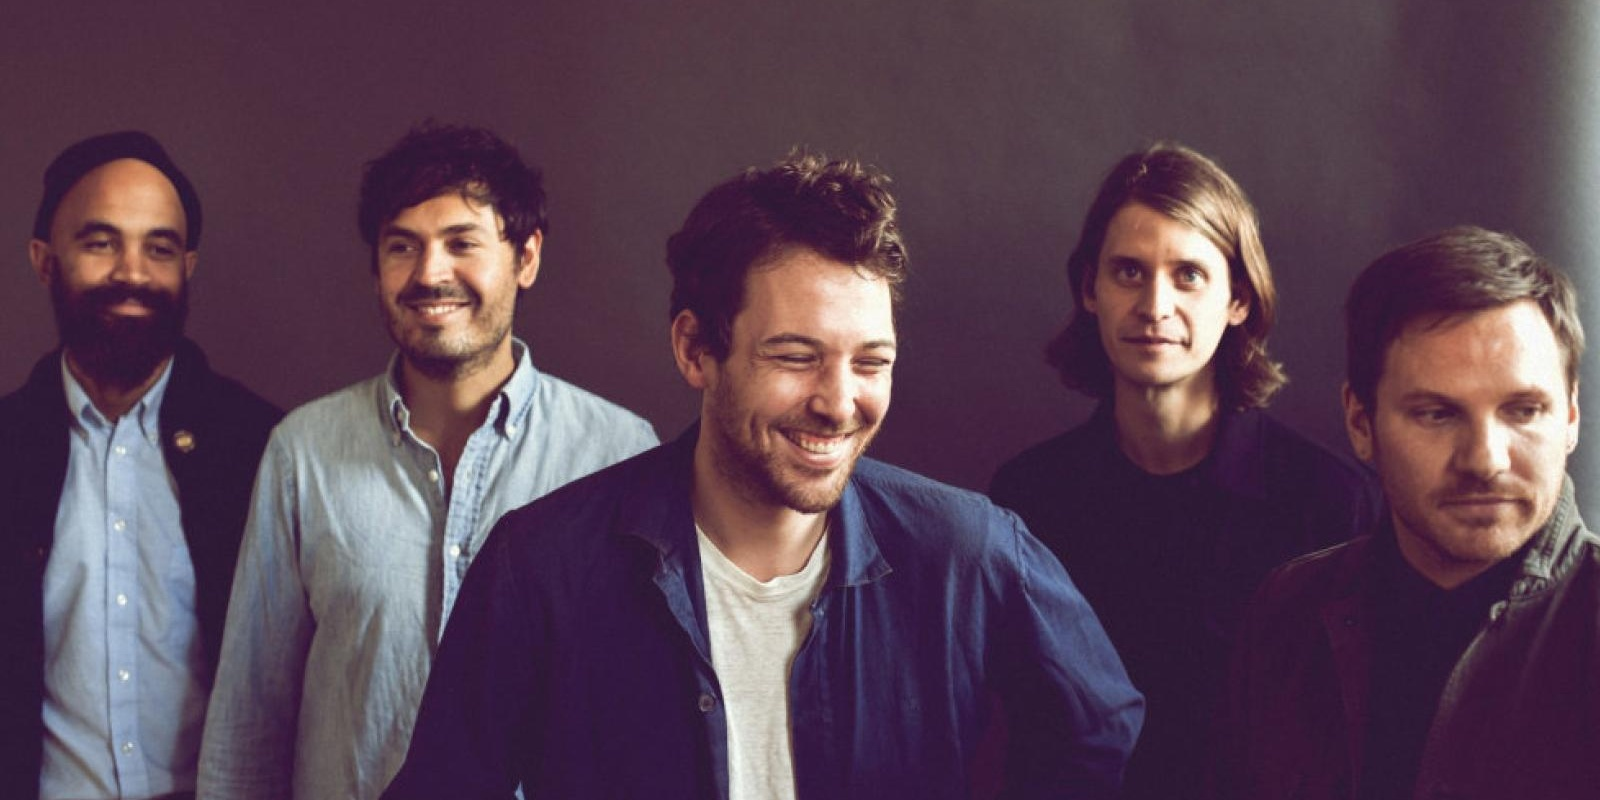 """Fleet Foxes' Robin Pecknold: """"I'm prouder of this record than of the previous ones we've done"""""""